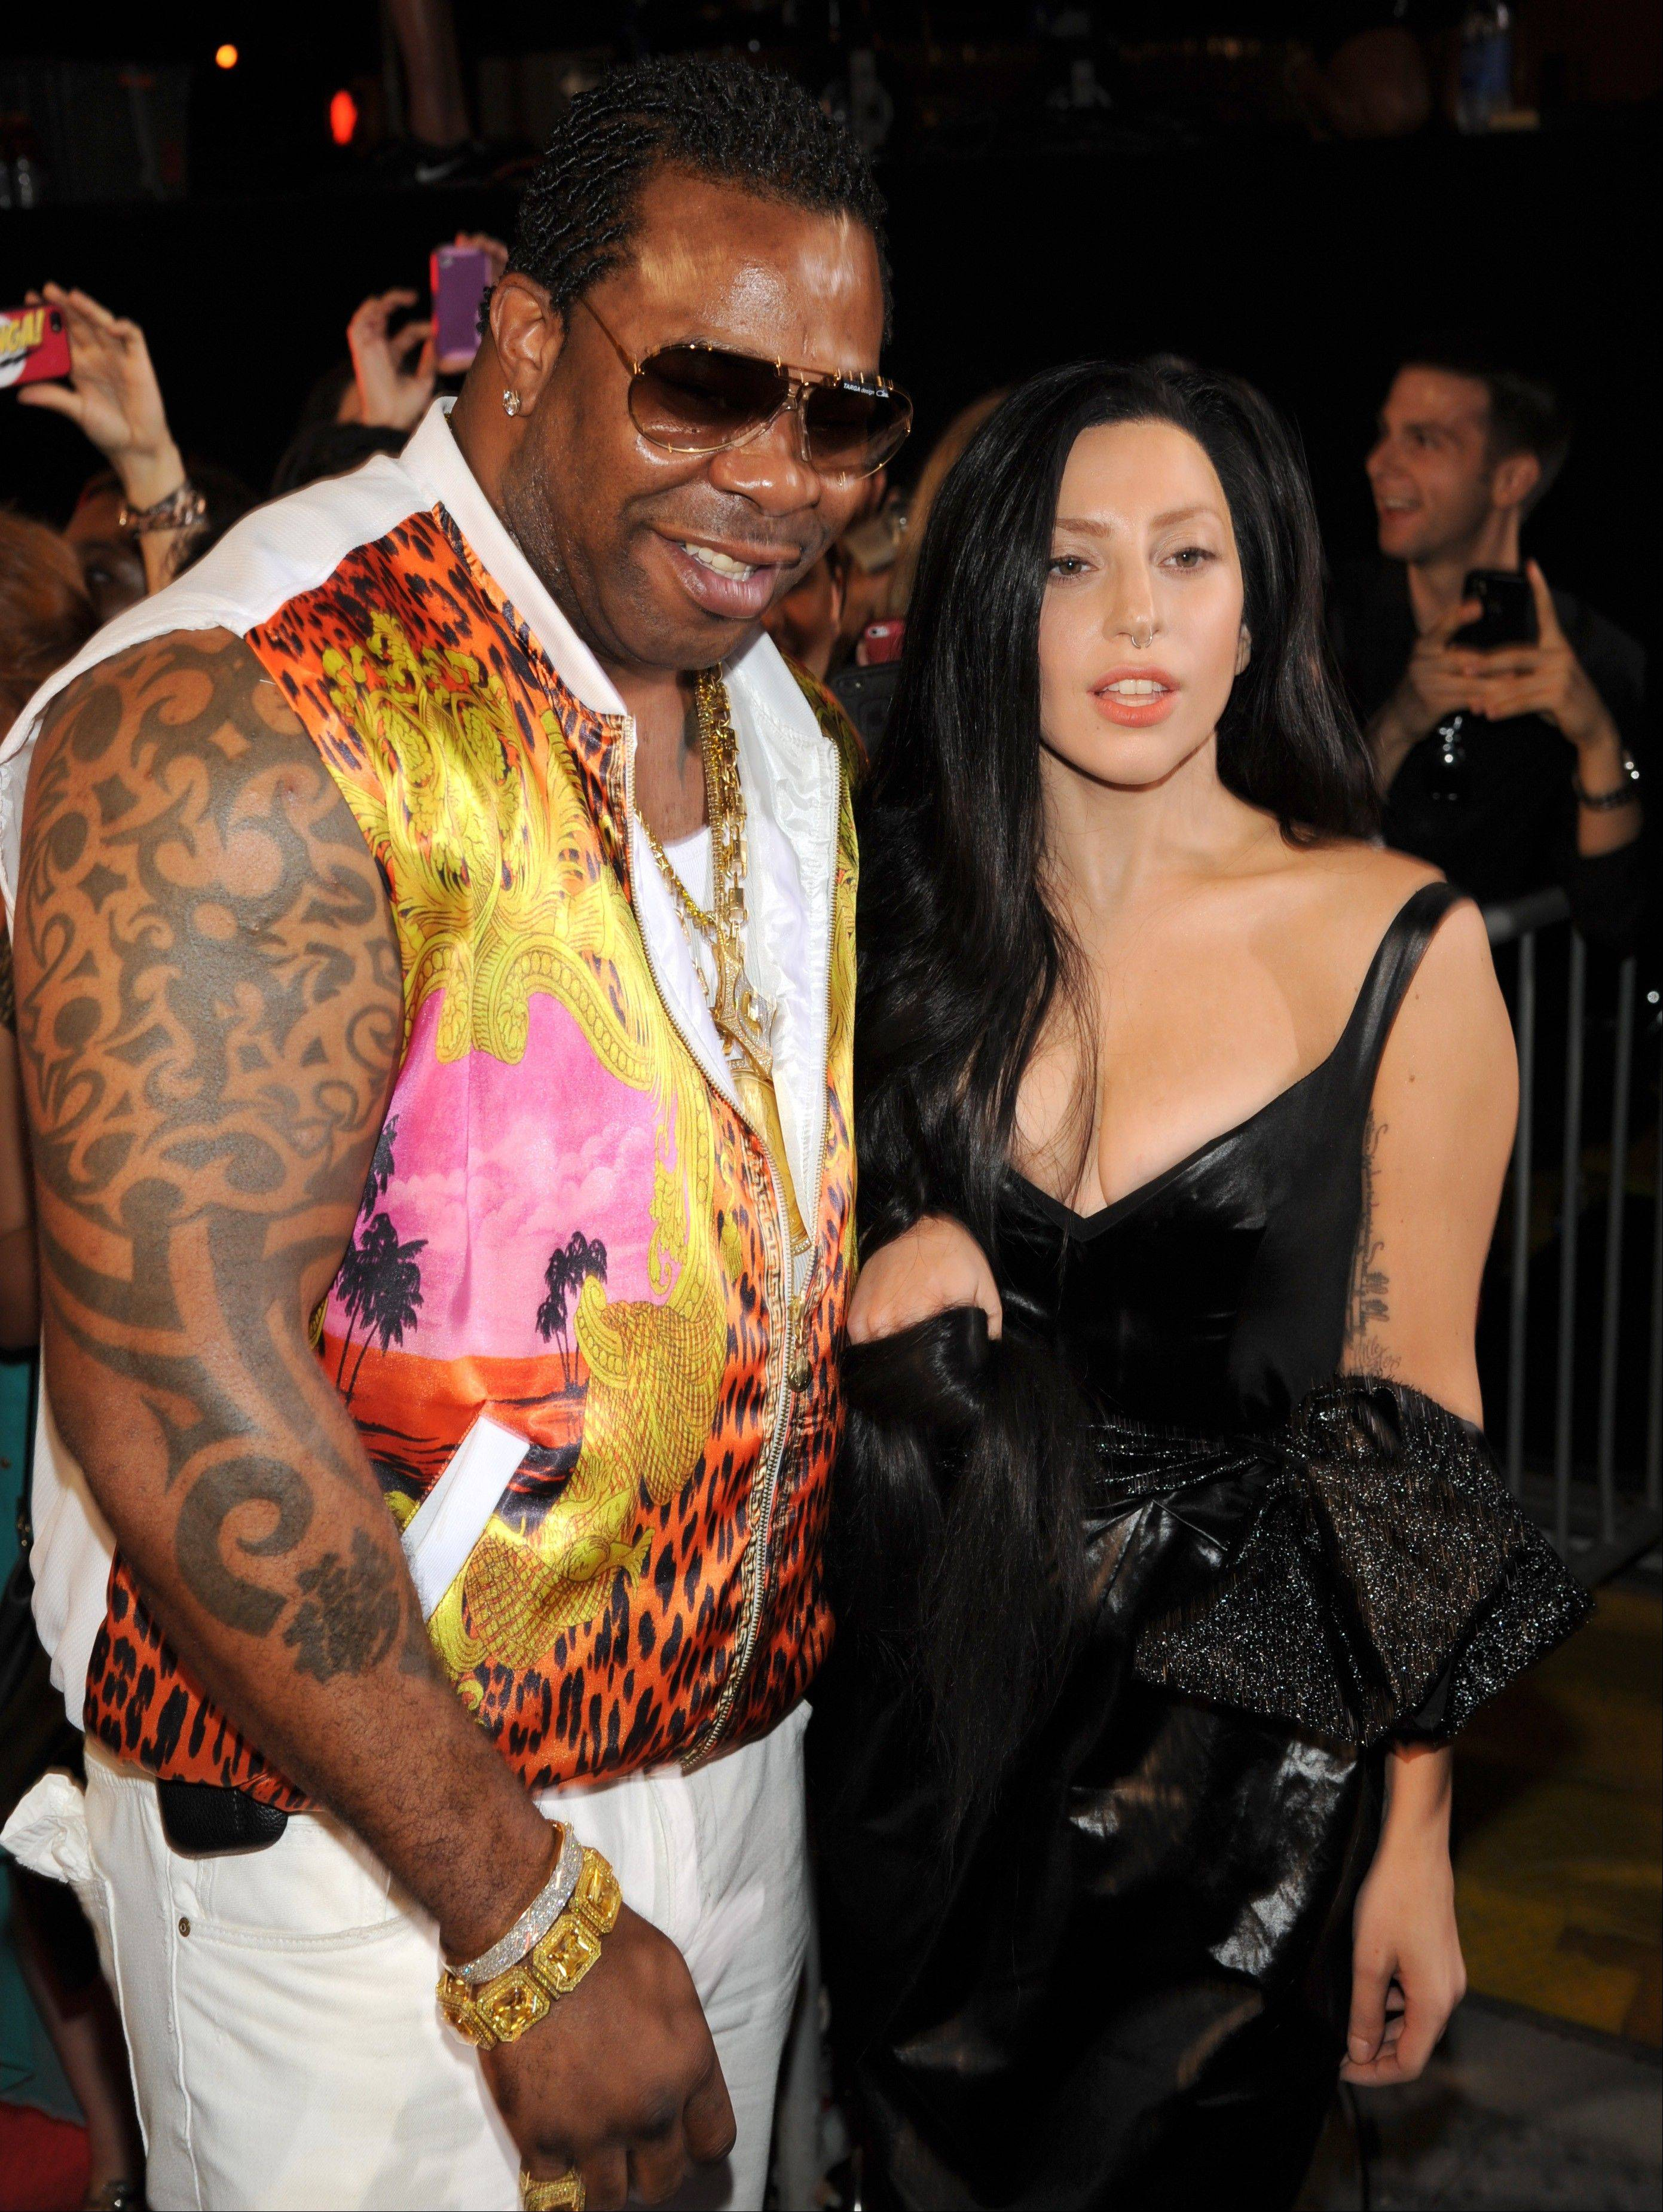 Busta Rhymes, from left, and Lady Gaga arrive at the MTV Video Music Awards on Sunday, Aug. 25, 2013, at the Barclays Center in the Brooklyn borough of New York.